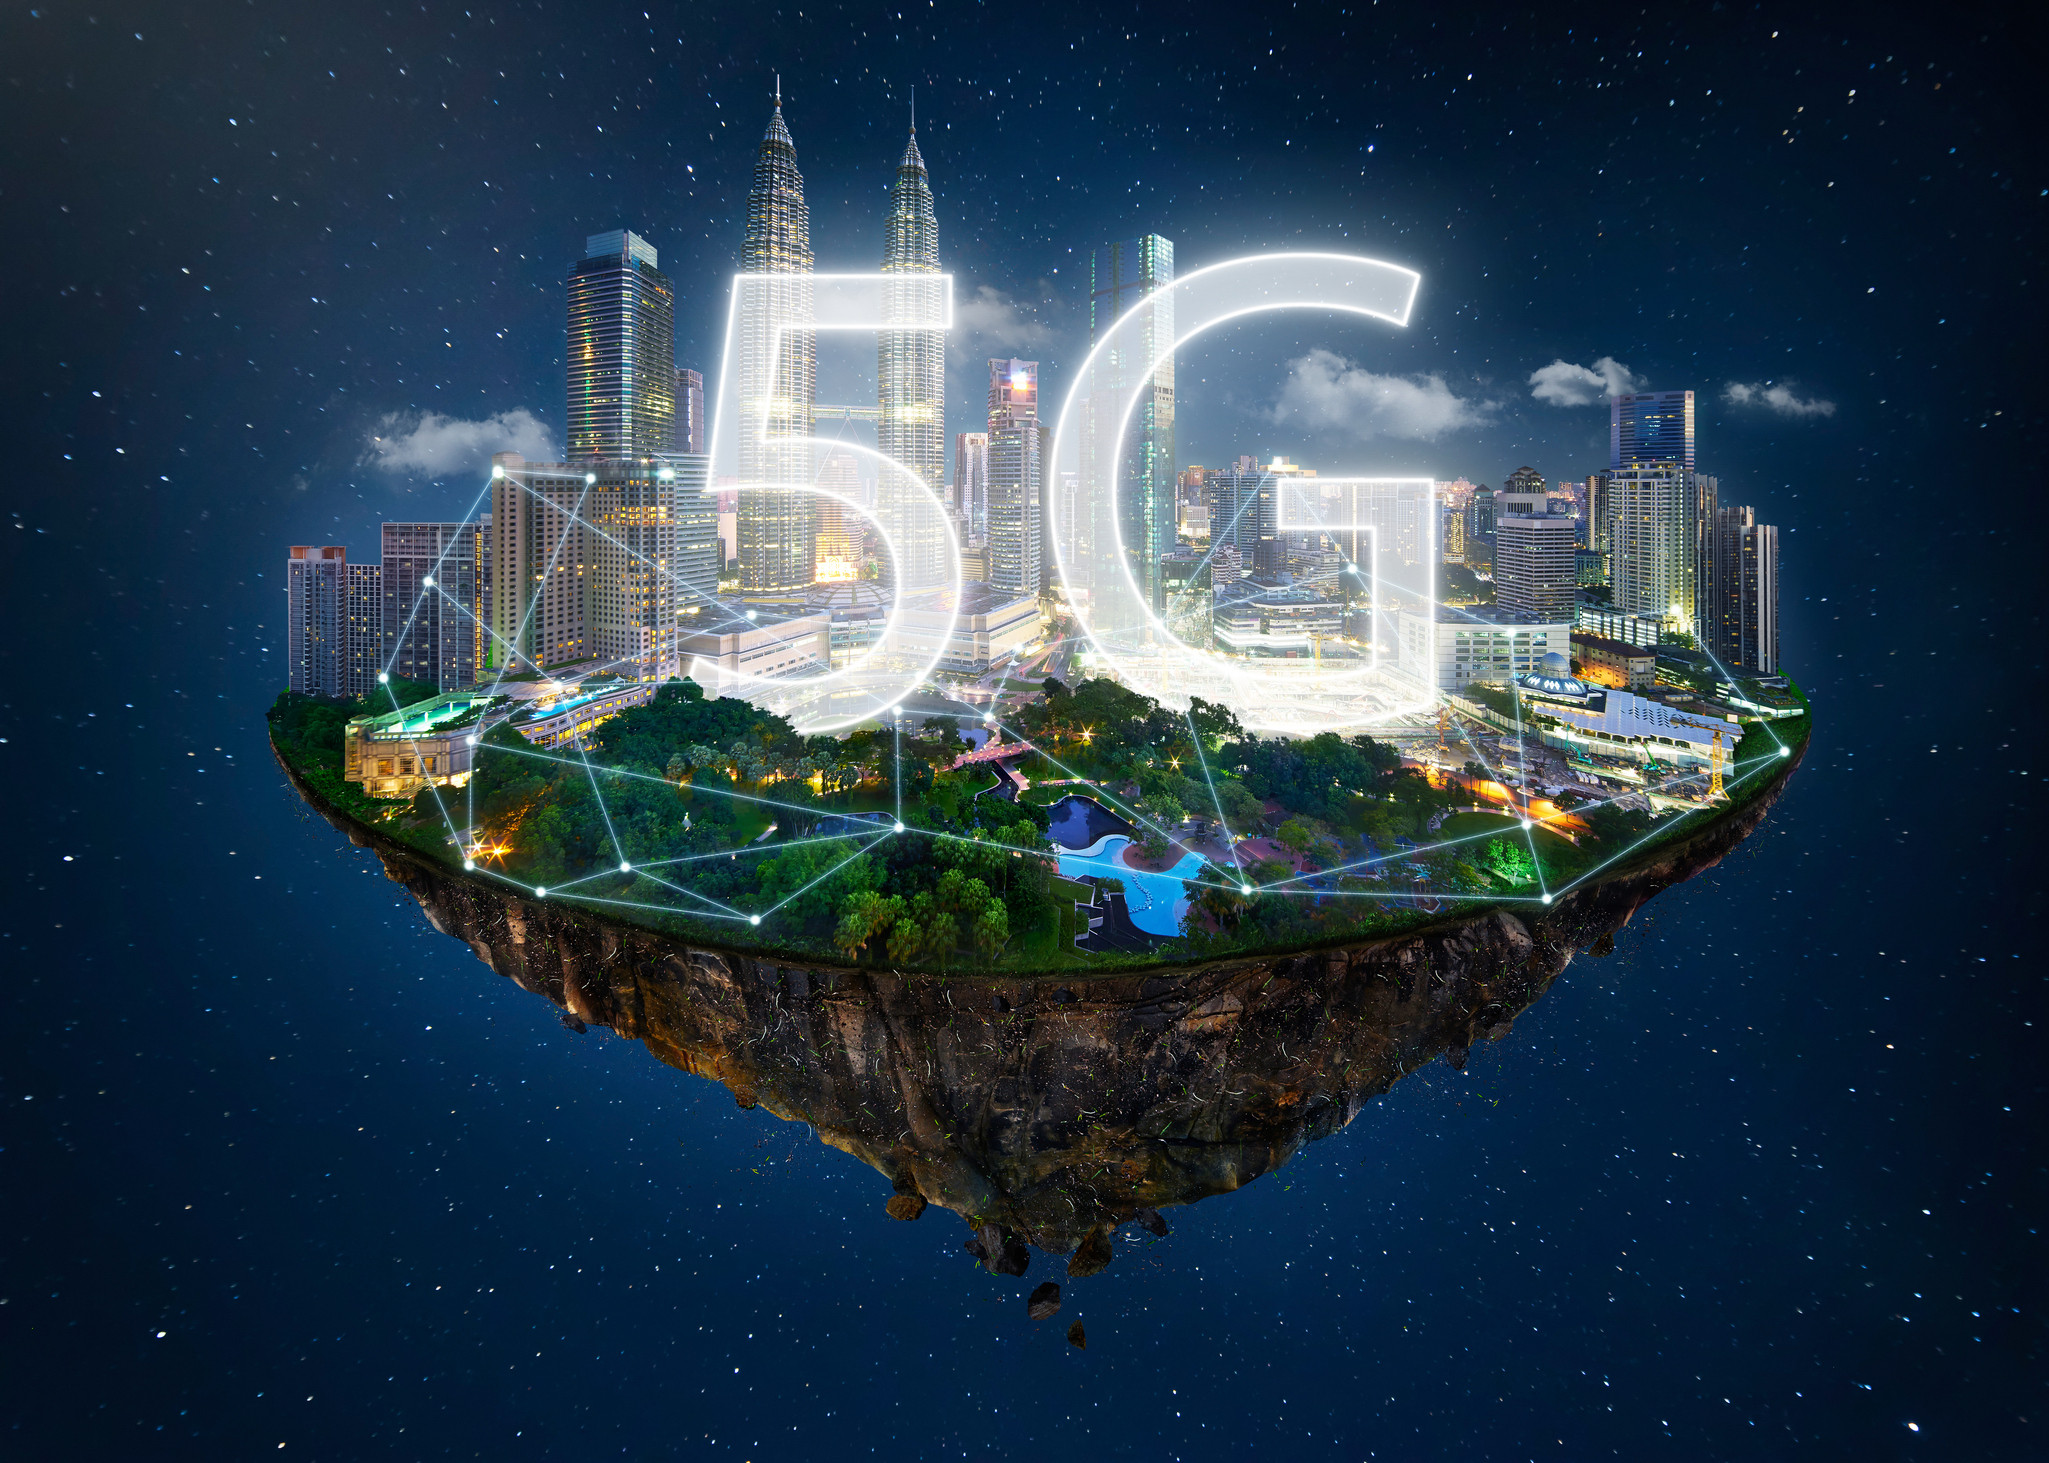 Mobile Technology: 5g Mobile Technology. Large ScaleHugh Leap Change In